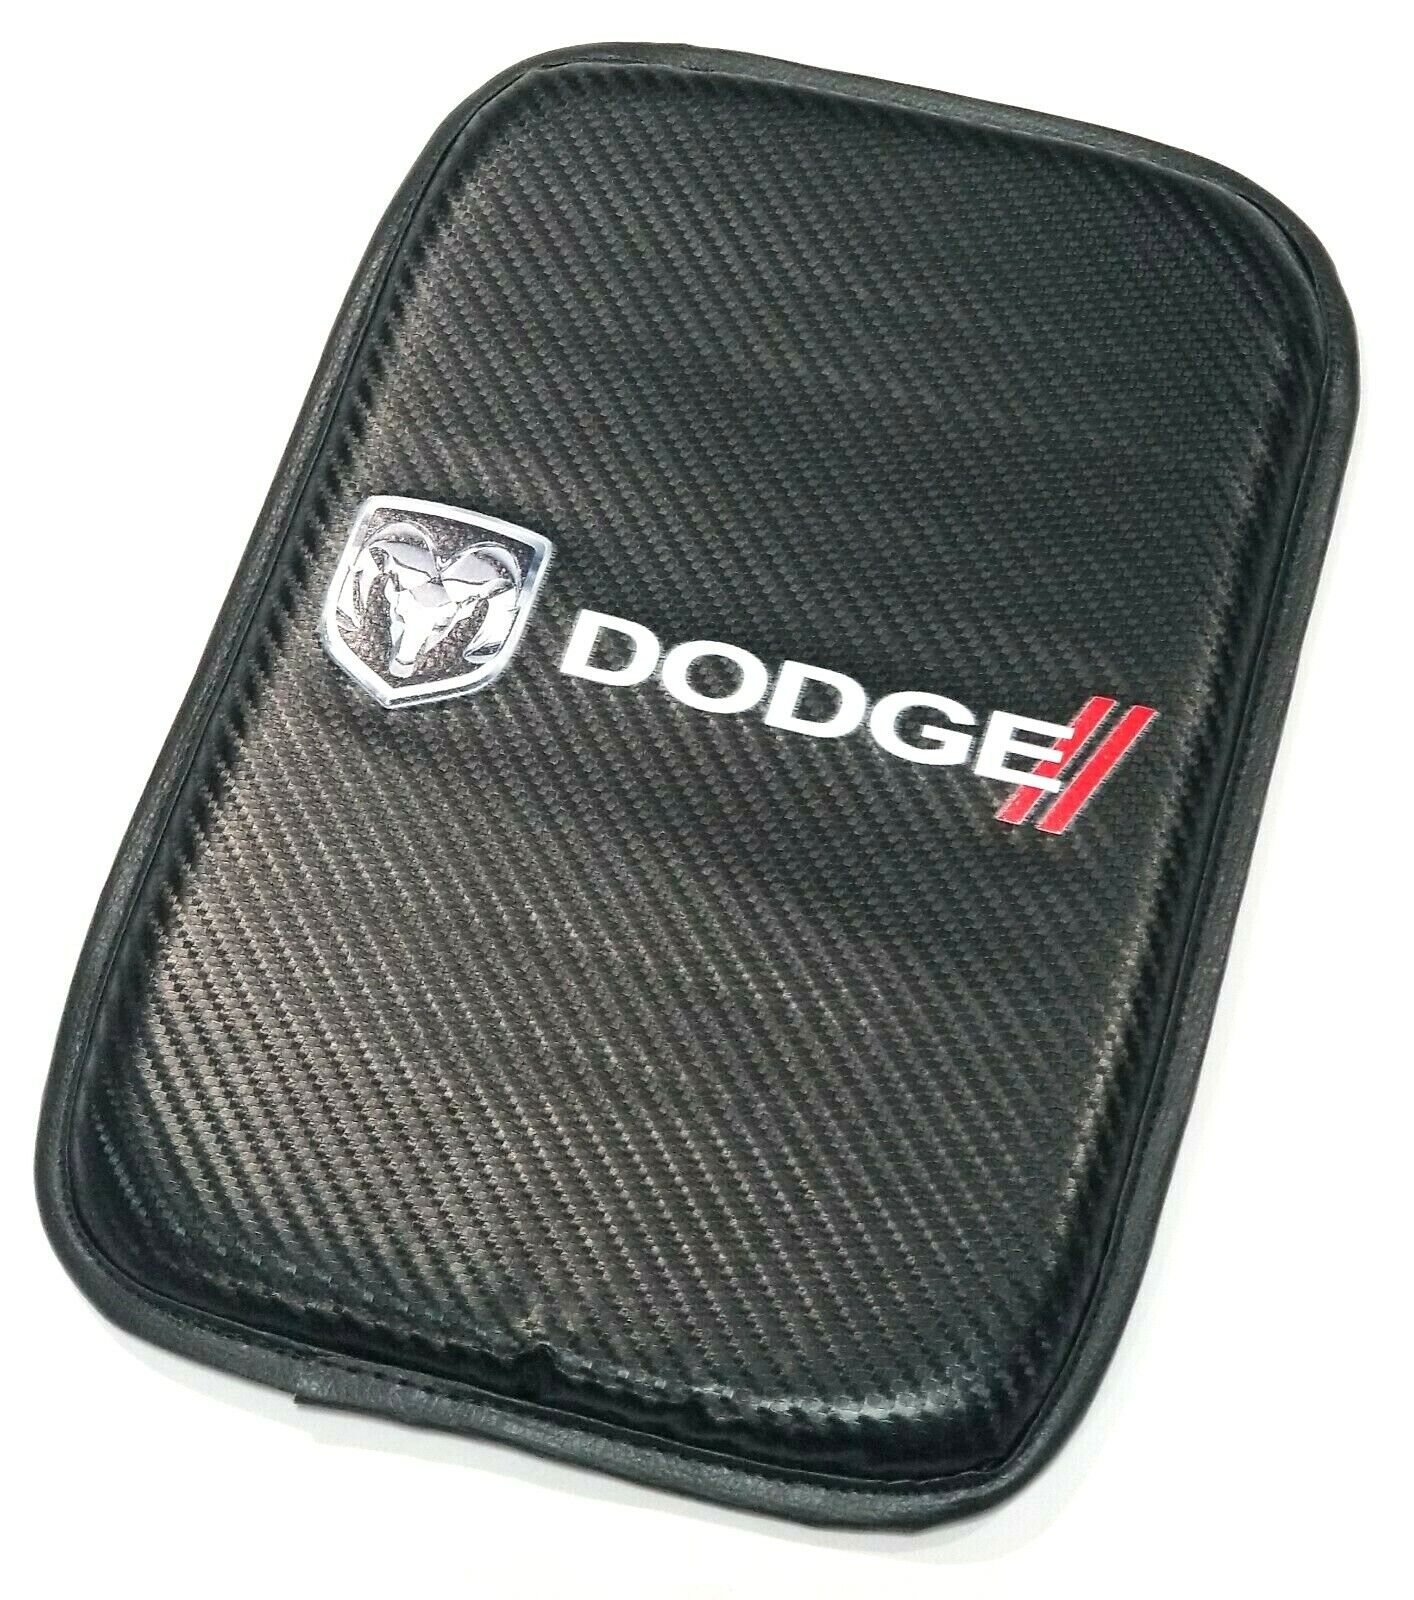 For JDM DODGE Racing Carbon Car Center Console Armrest Cushion Mat Pad Cover X1